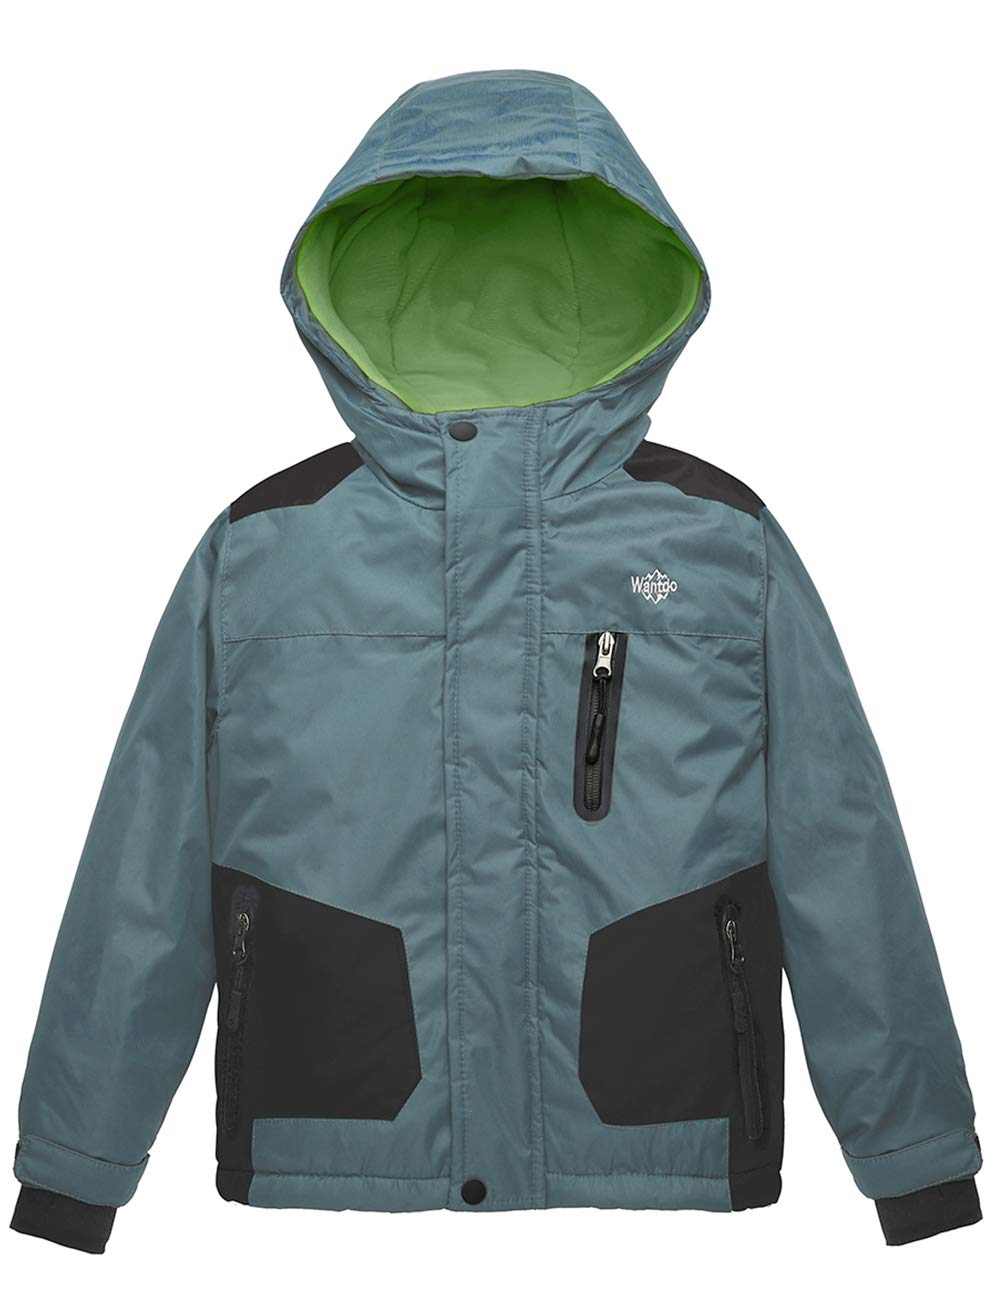 Wantdo Boy's Waterproof Ski Jacket Windproof Padded Snow Winter Coat